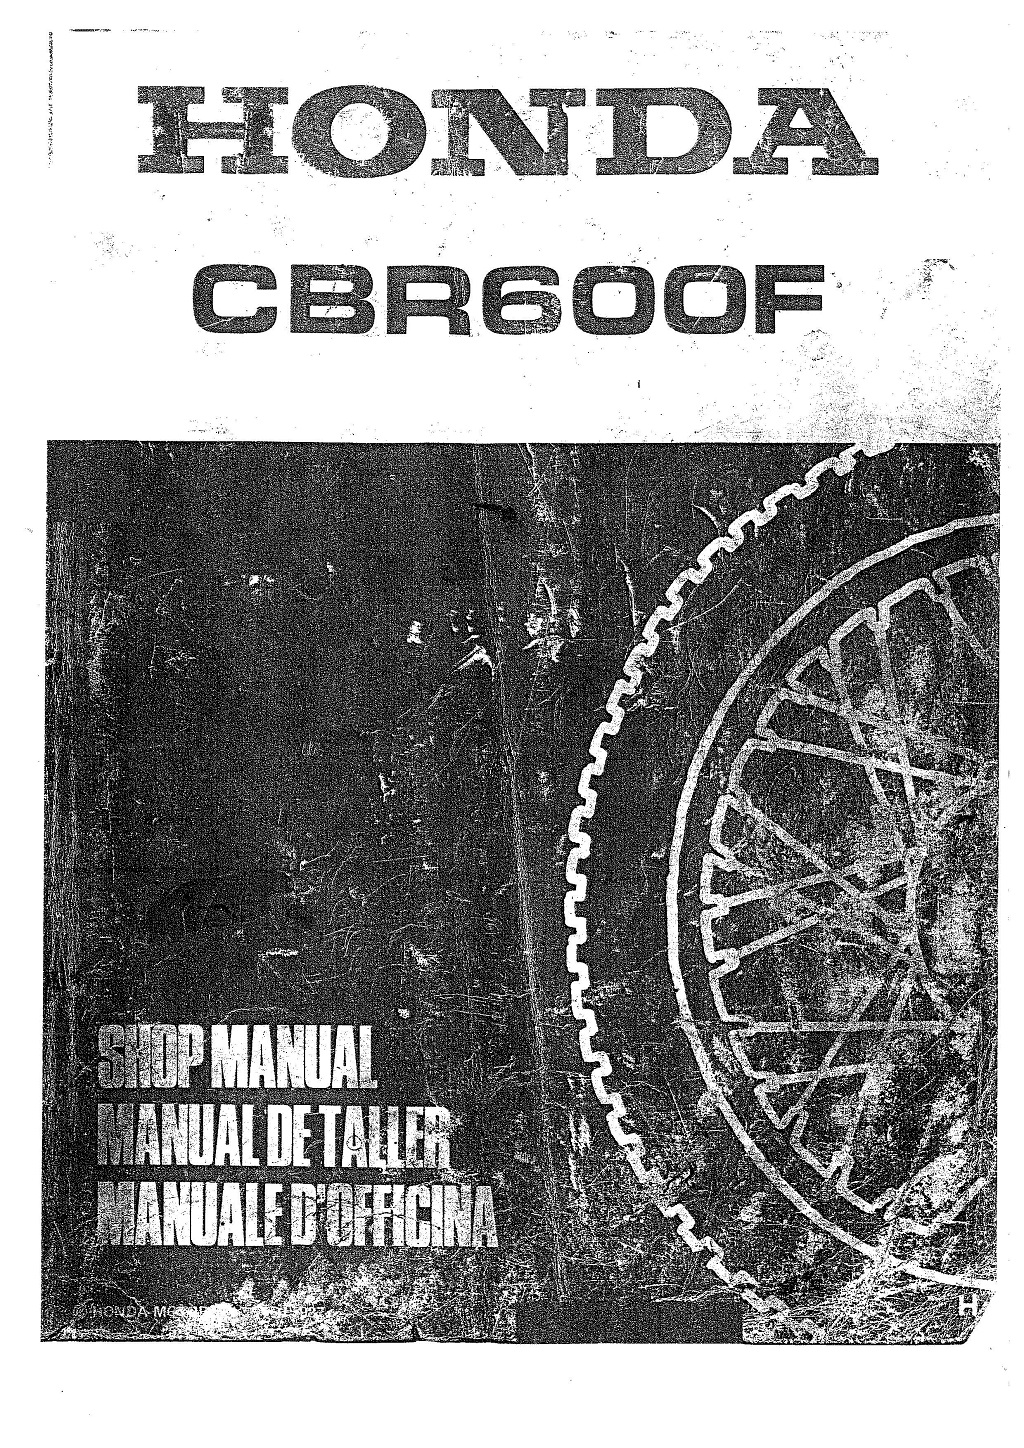 Workshop Manual for Honda CBR600F (1987-1990) (Multi-lingual)